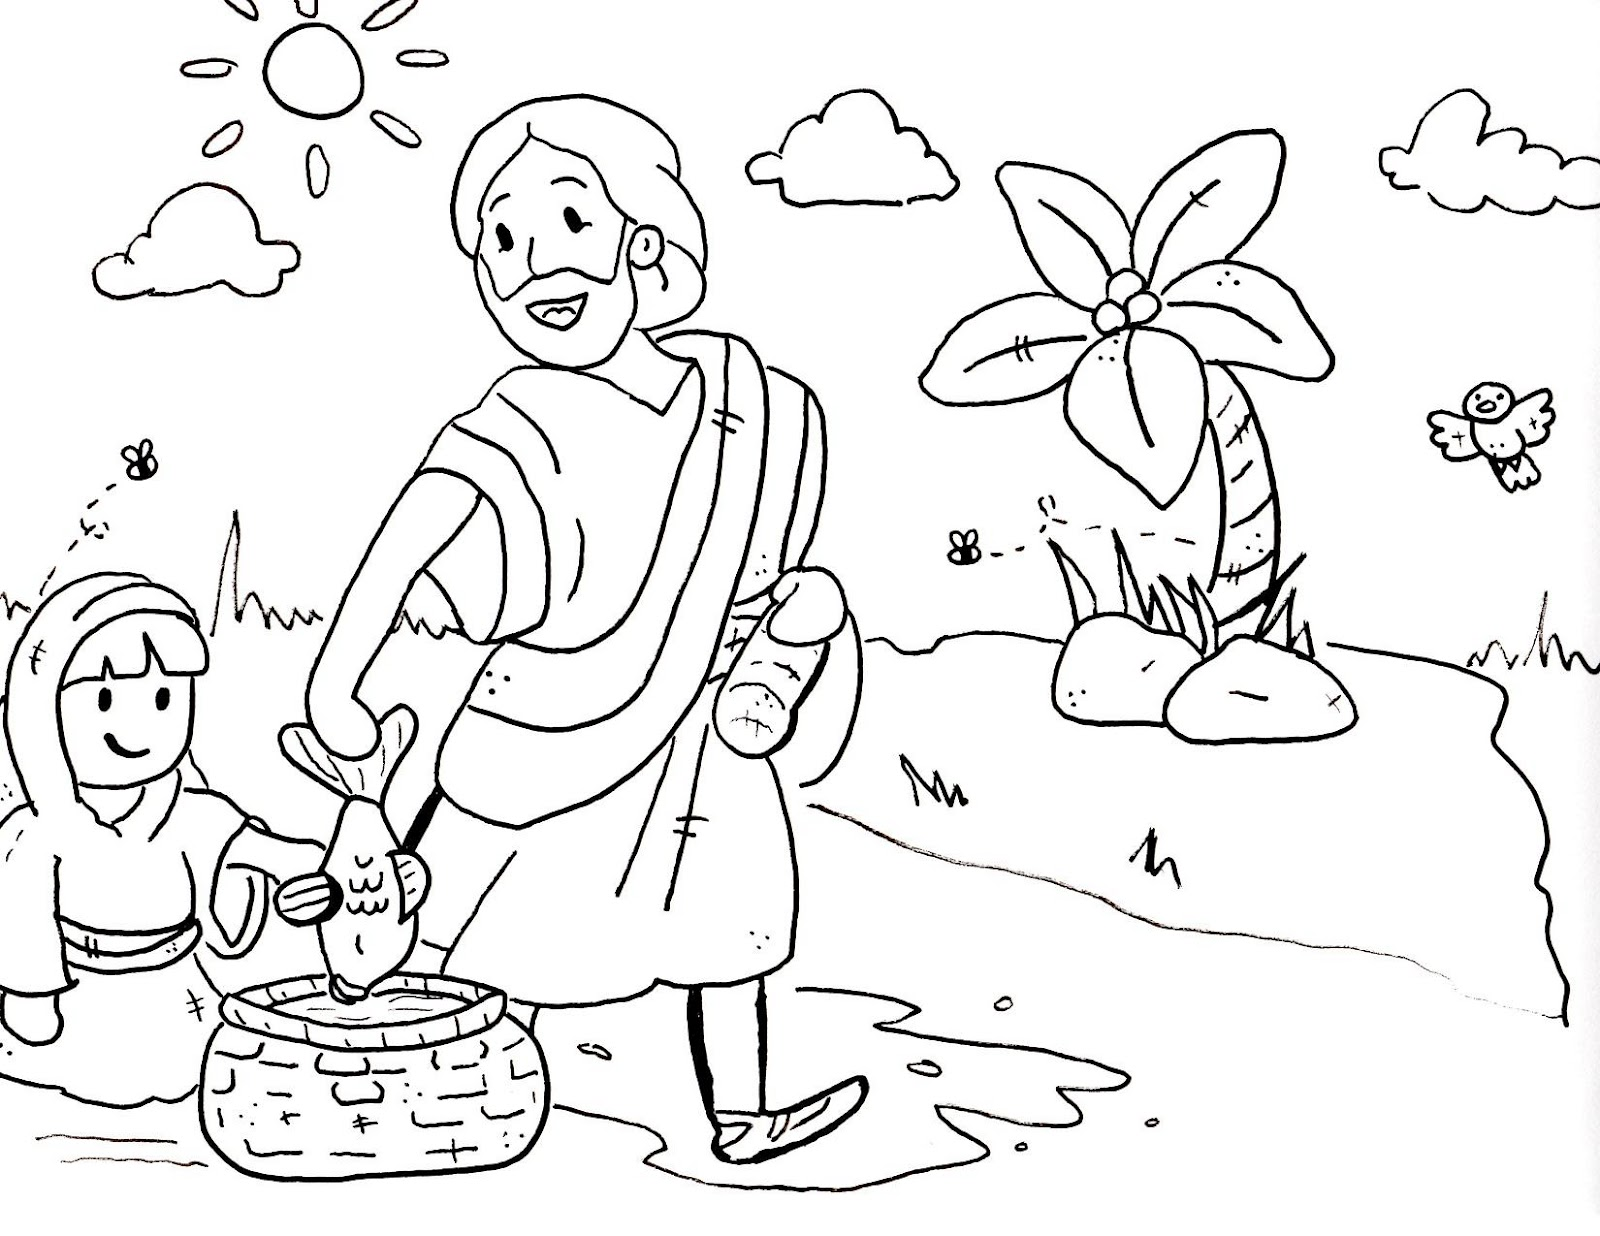 Kids School Coloring Pages at GetDrawings.com | Free for ...